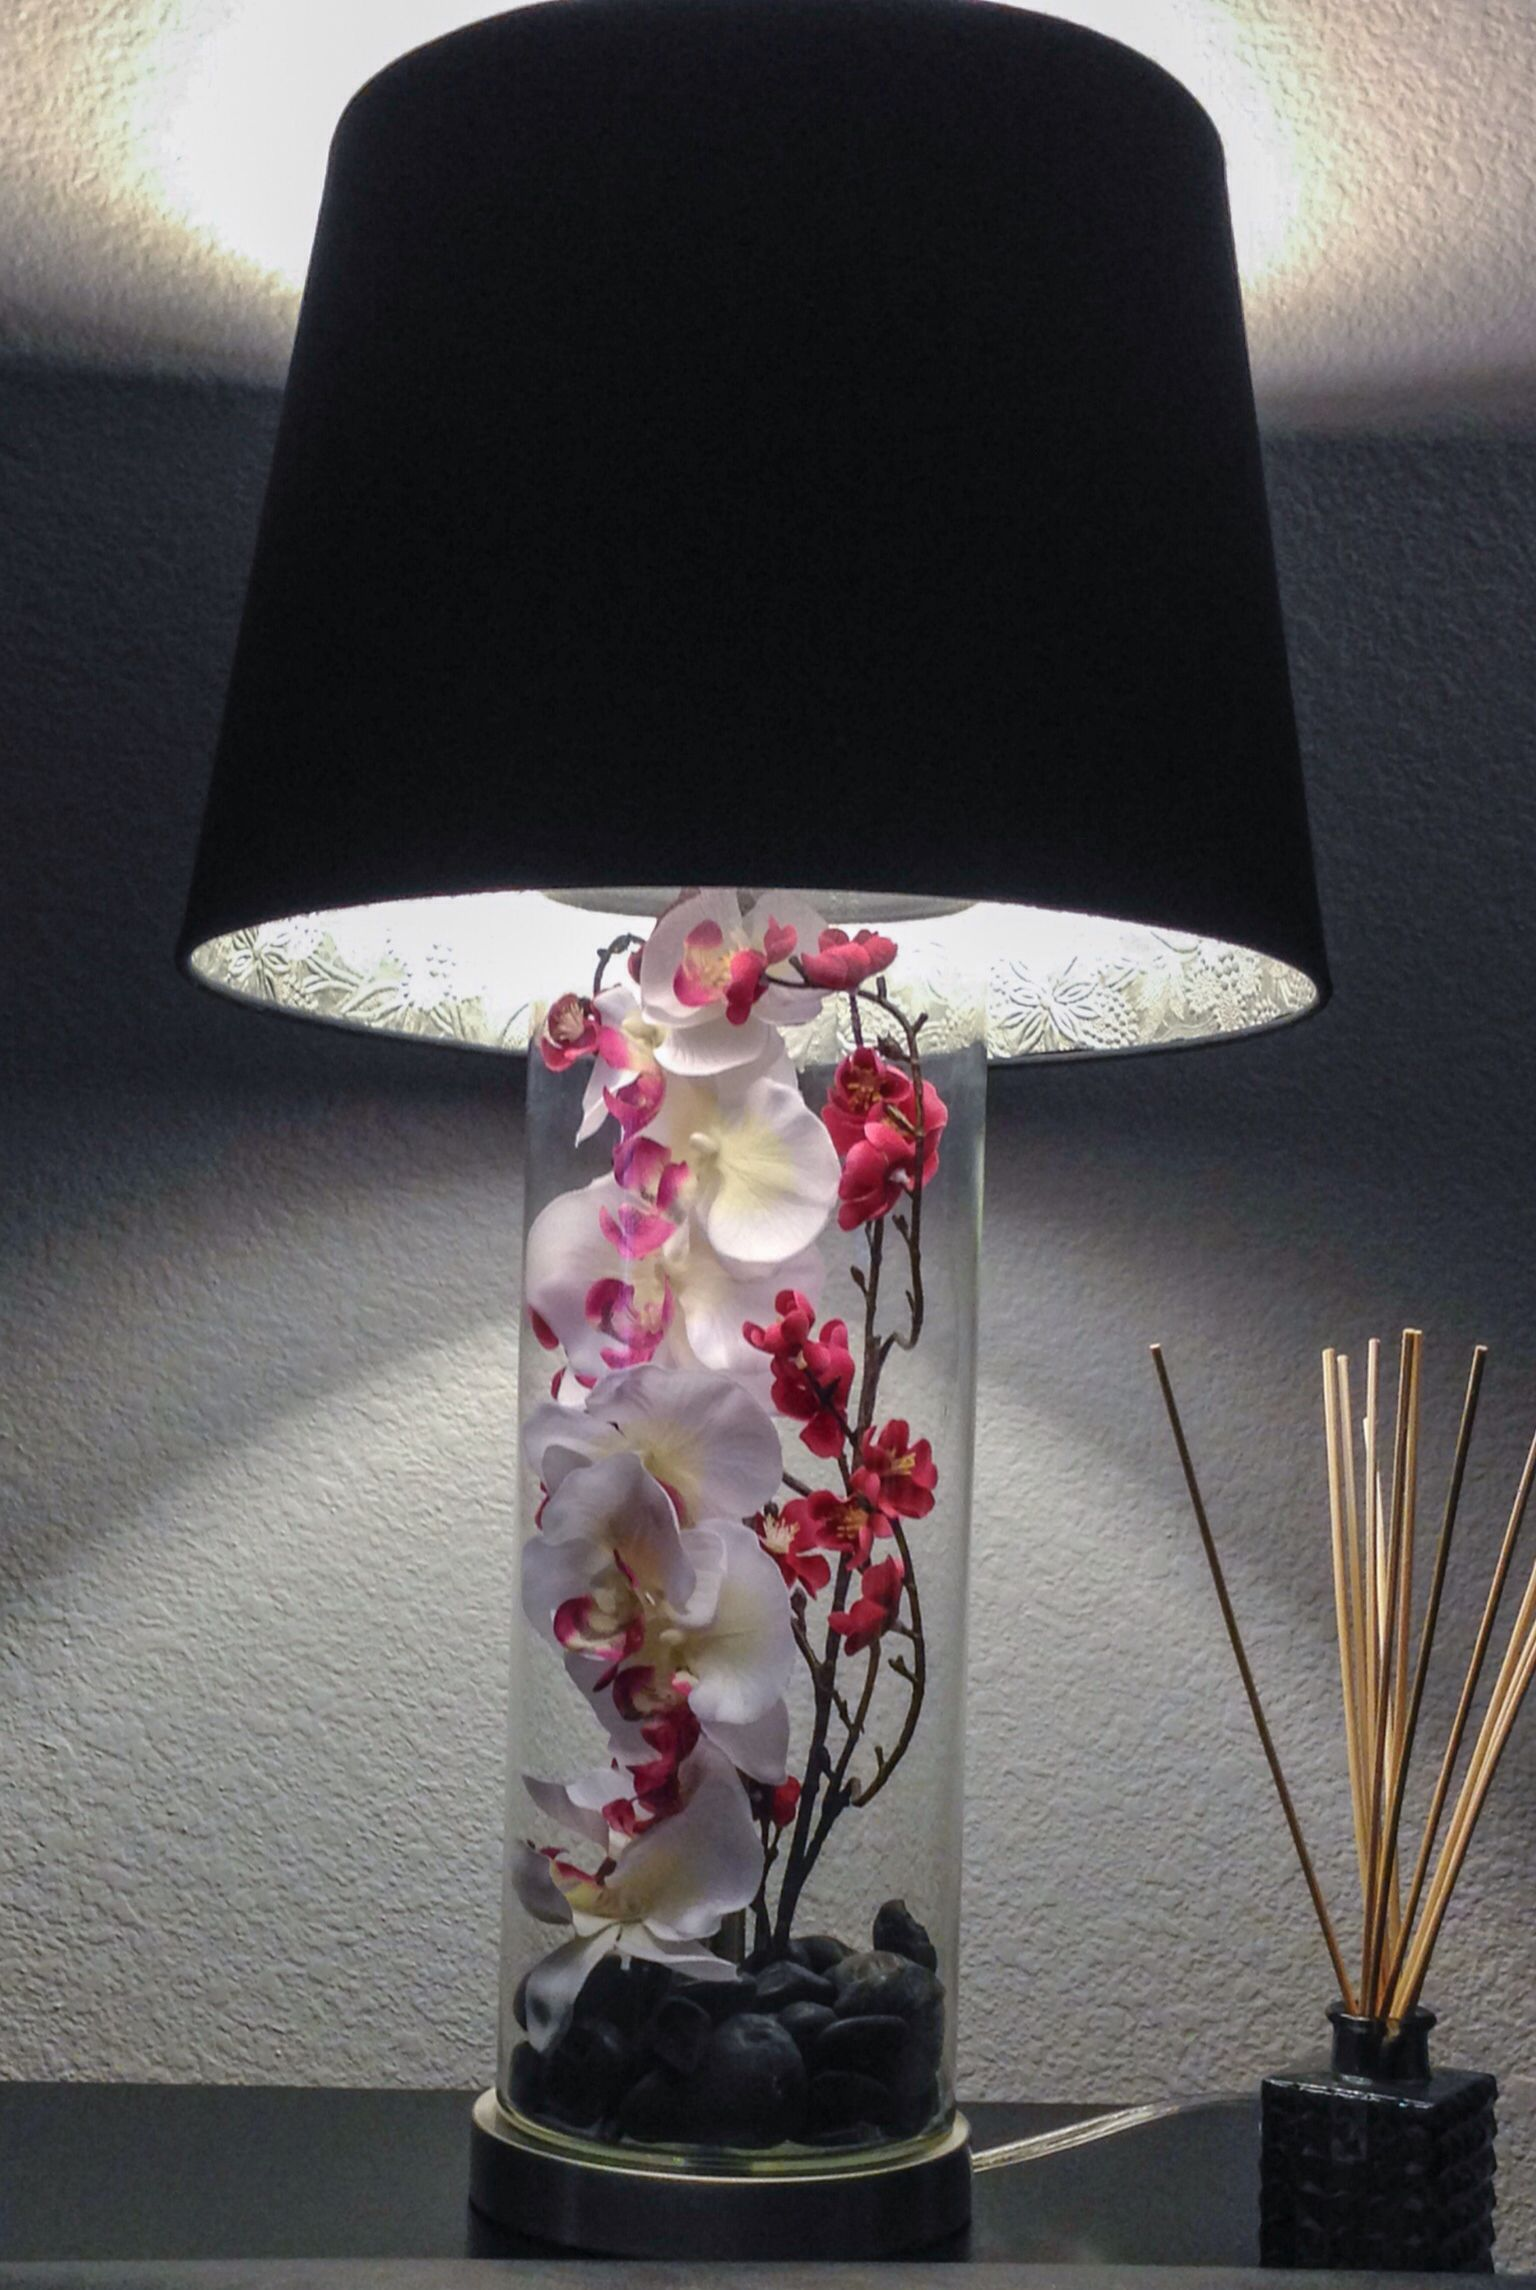 diy lamp base ideas on pin by brittany on bbb apartment glass lamp base diy table lamp lamp bases pinterest